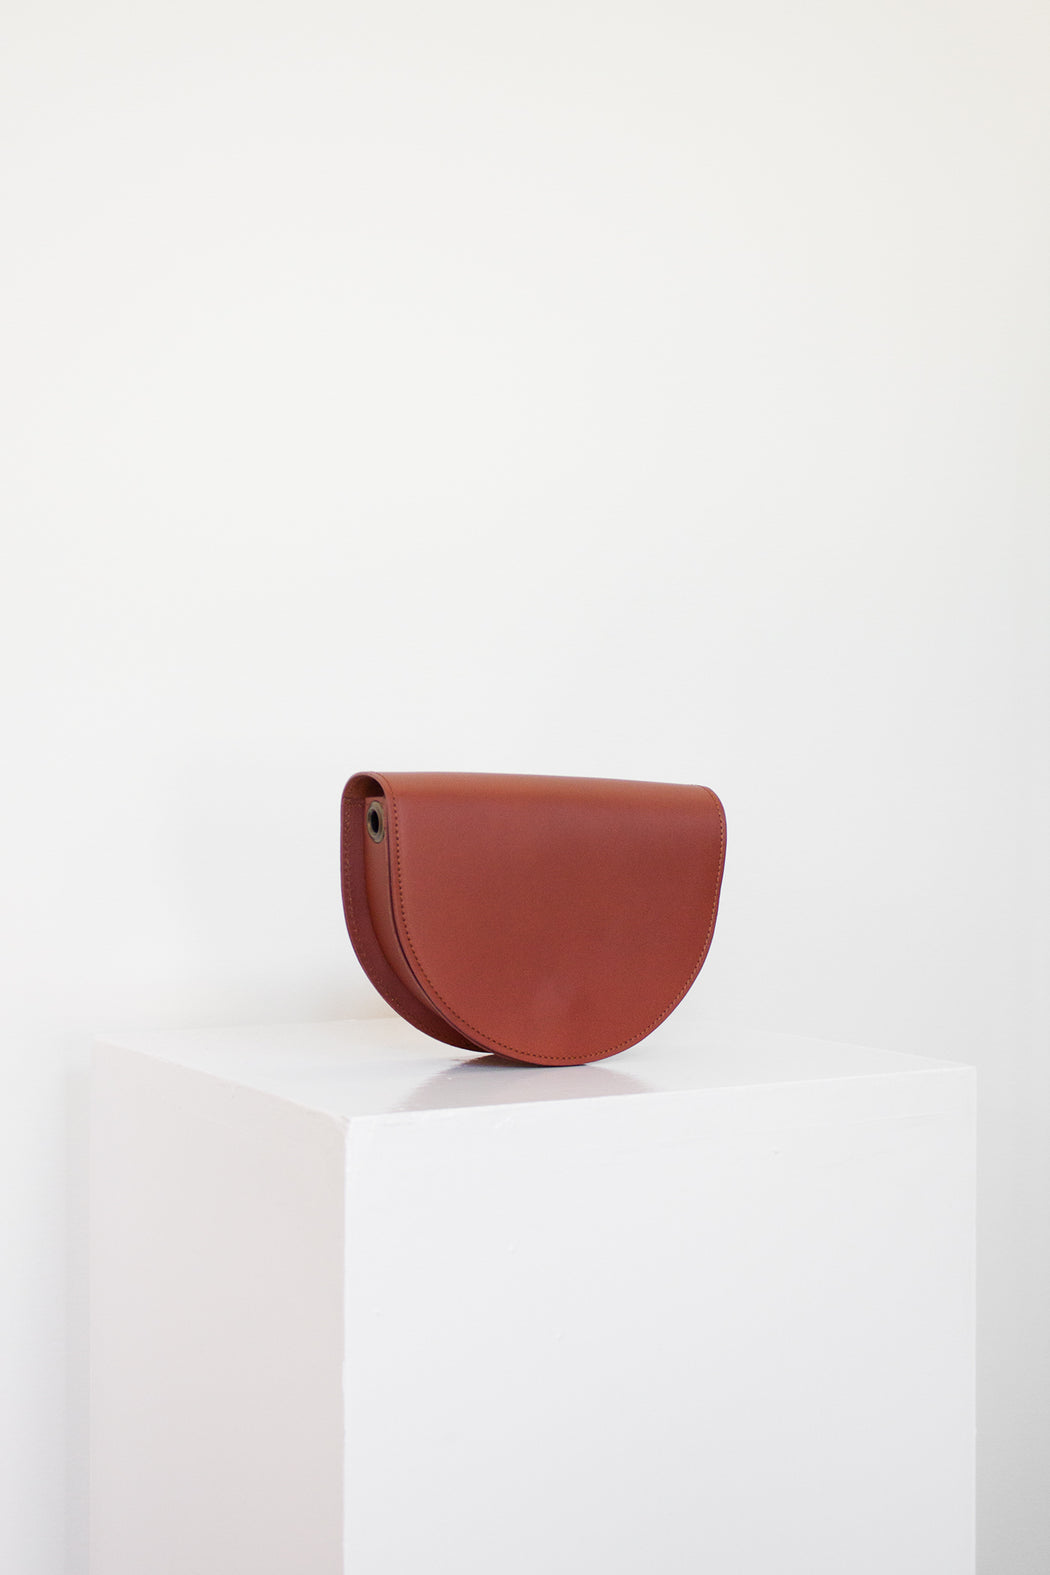 Vere Verto Leather Goods | Luna Brown | Hazel & Rose